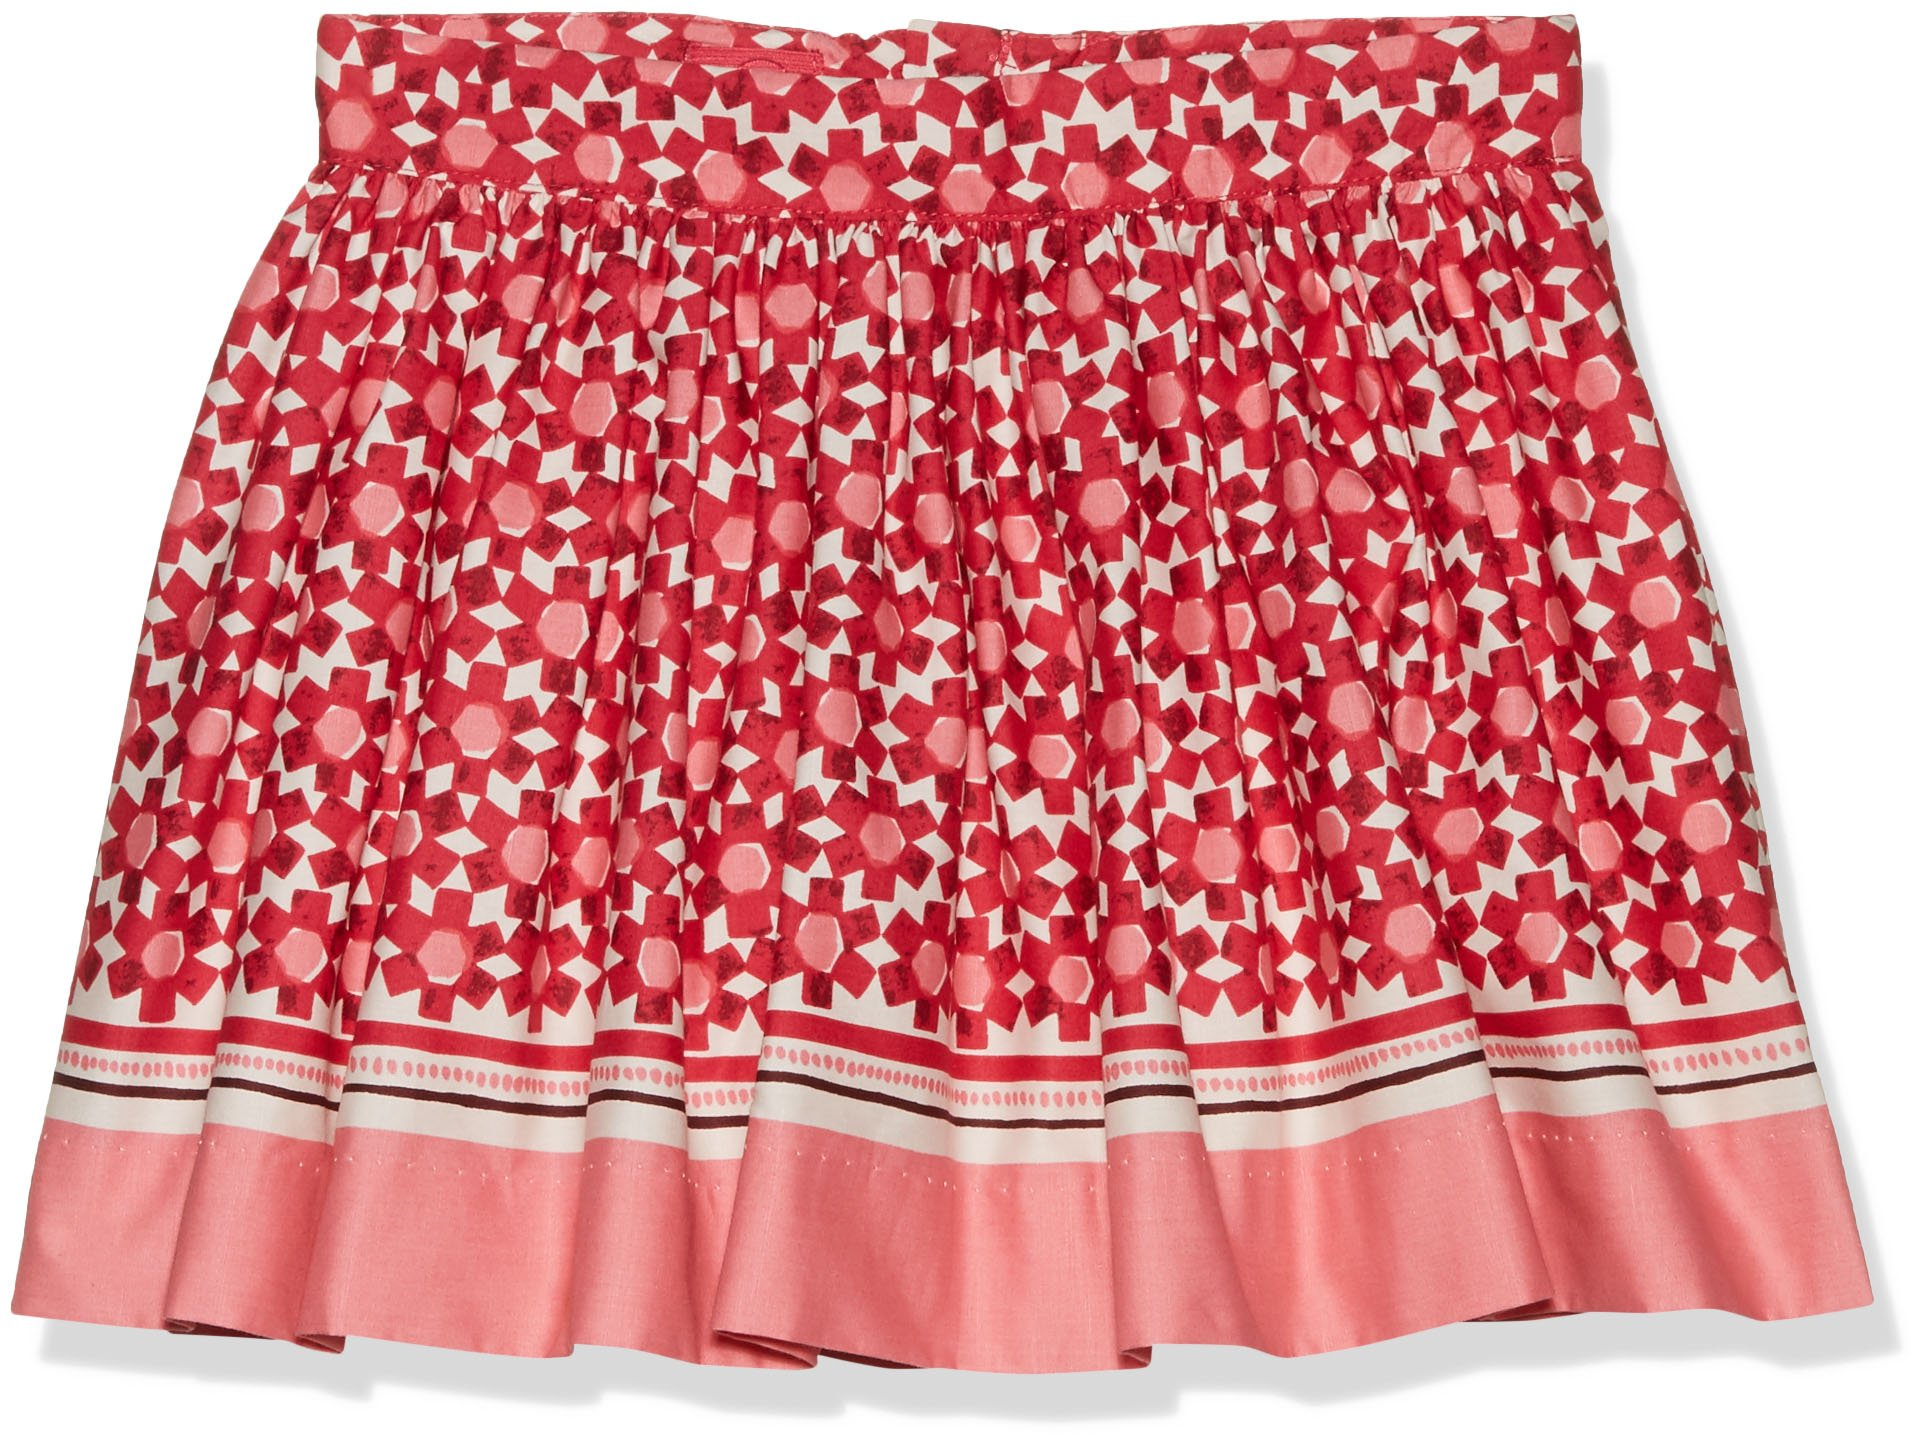 Kate Spade New York Girls' Skirt, Floral Tile, 4T